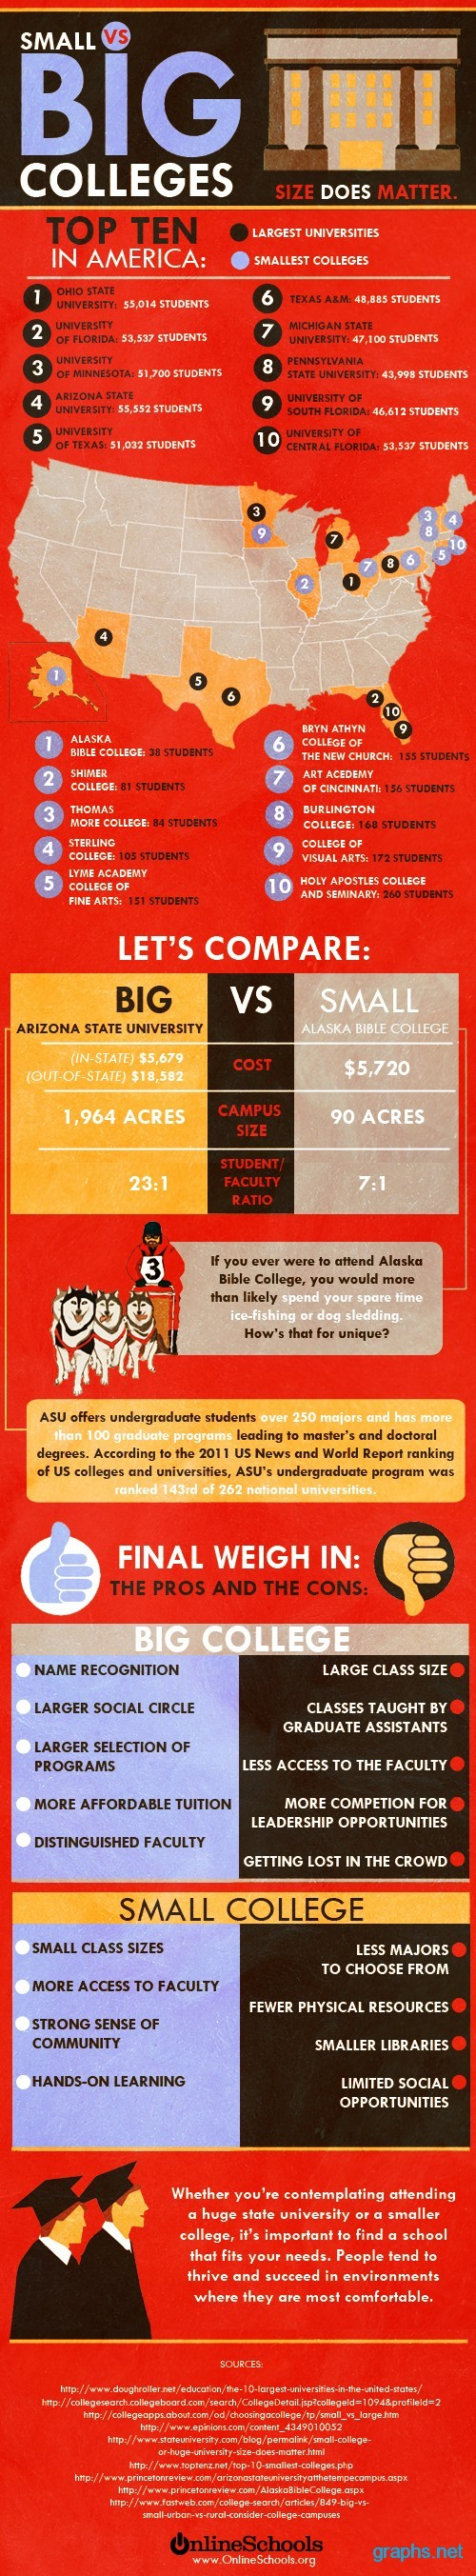 Pros and Cons of Big vs. Small Colleges